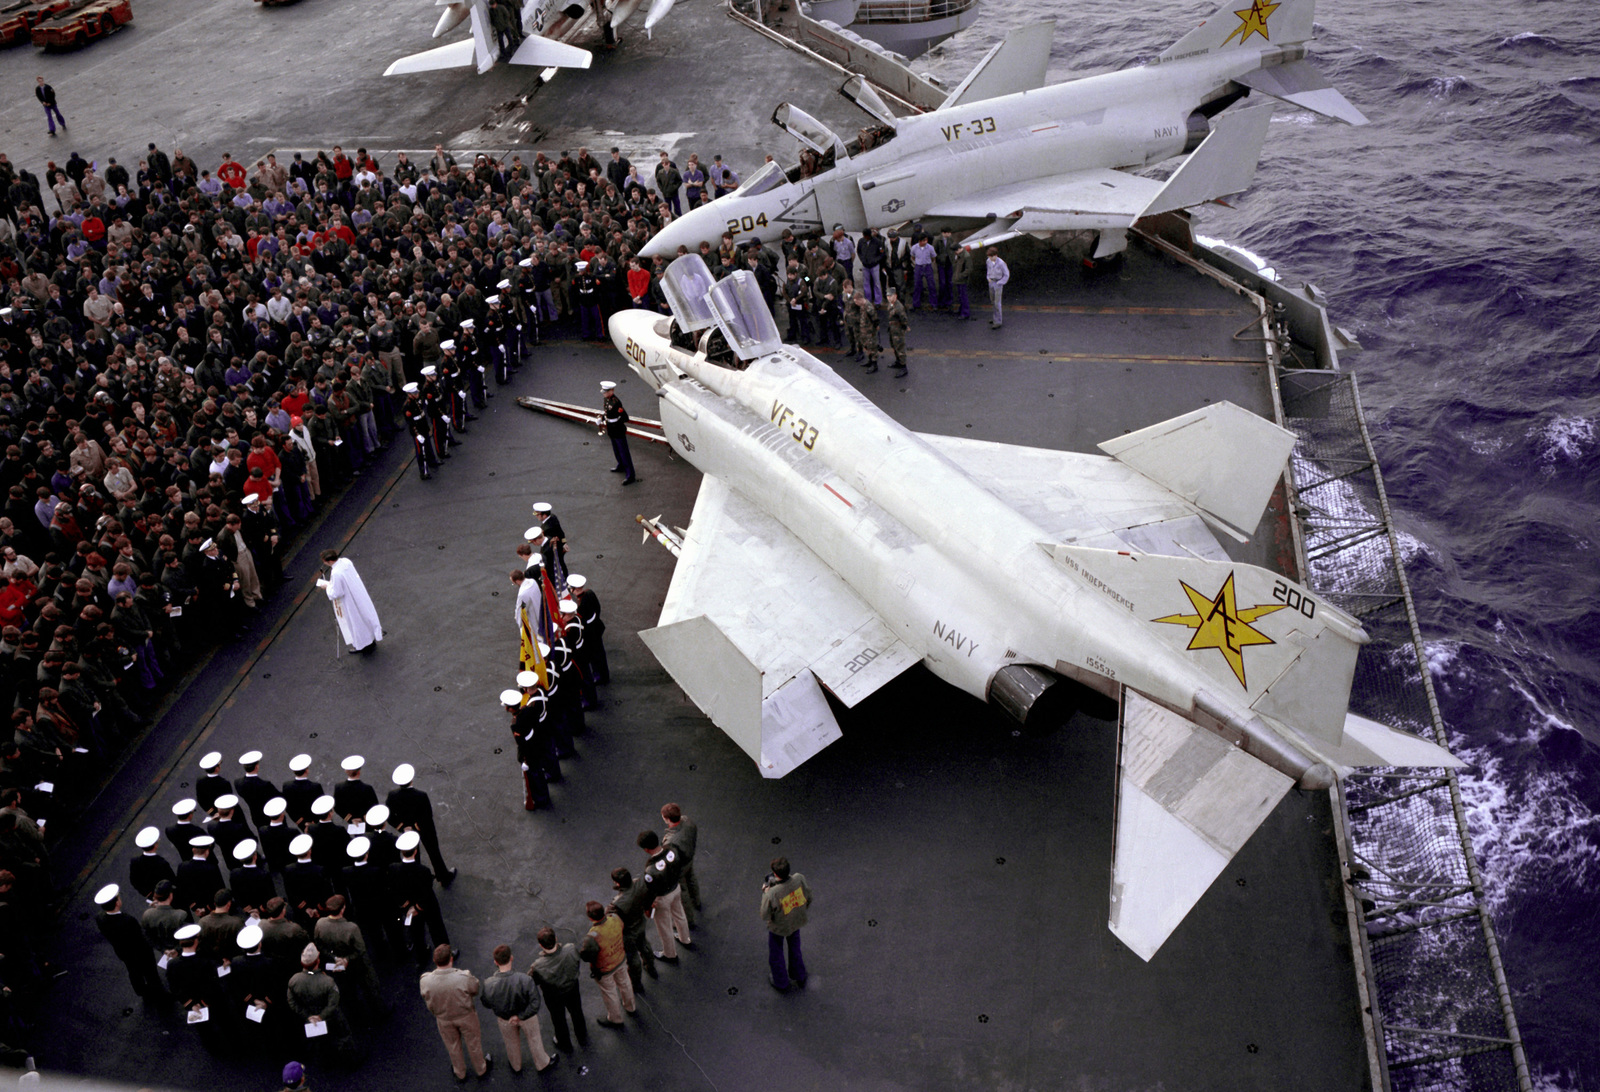 An overhead view of a memorial service underway on the flight deck of the aircraft carrier USS INDEPENDENCE (CV-62). The service is being held for two pilots from Fighter Squadron 33 (VF-33)